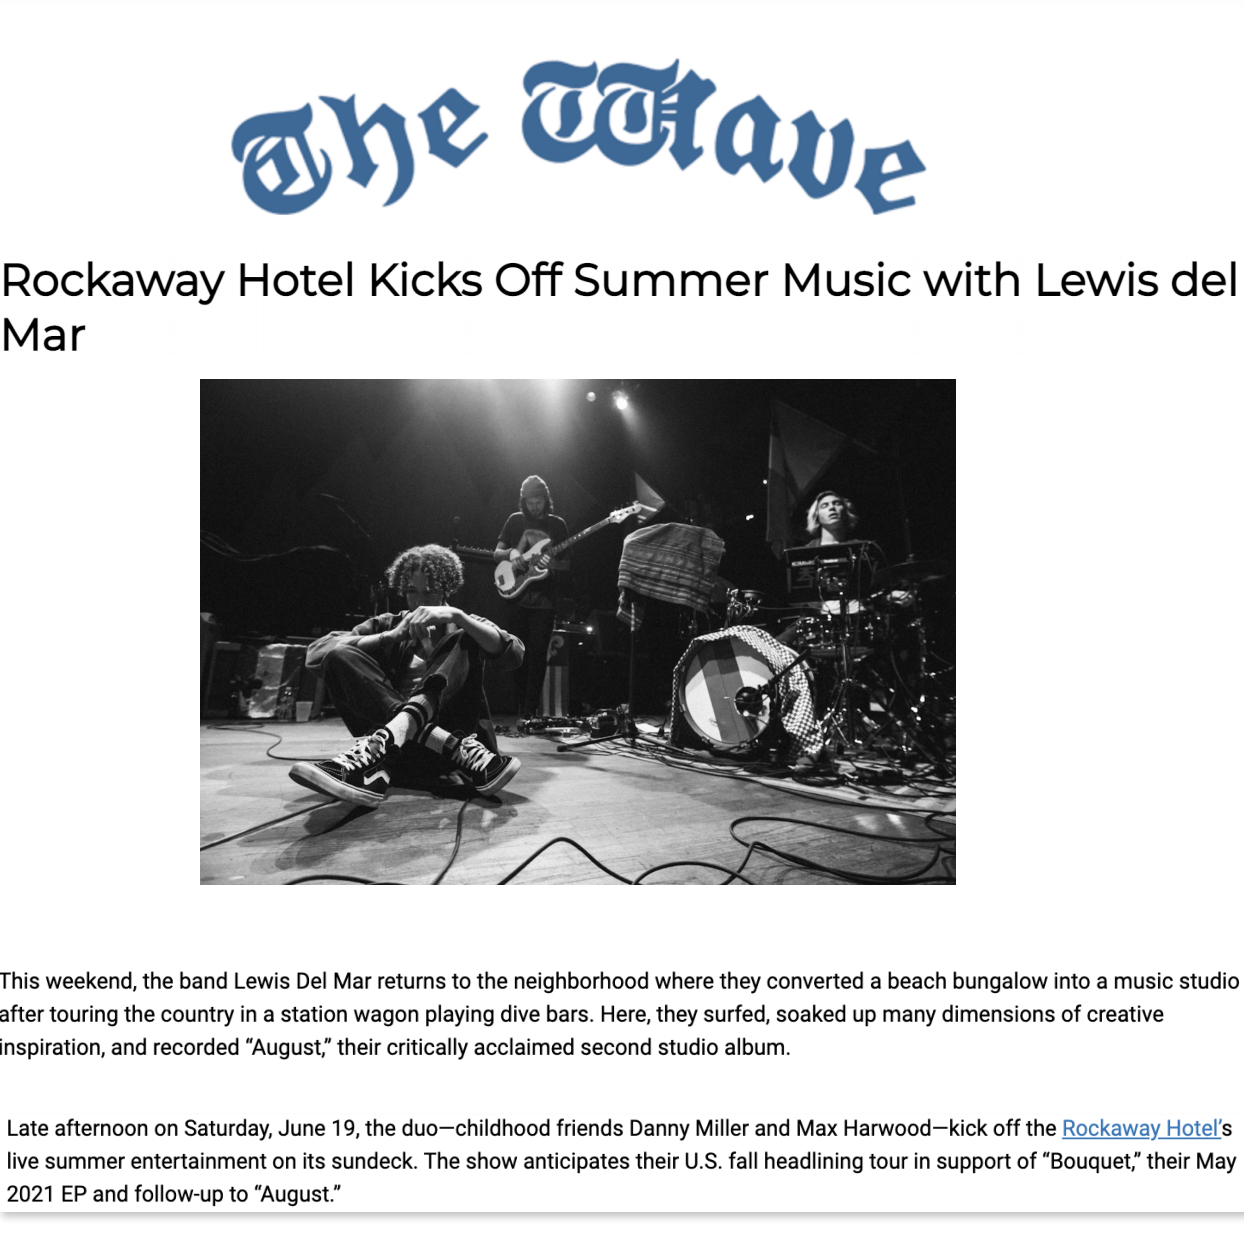 Article about The Rockaway Hotel in The Wave by Cara Cannella